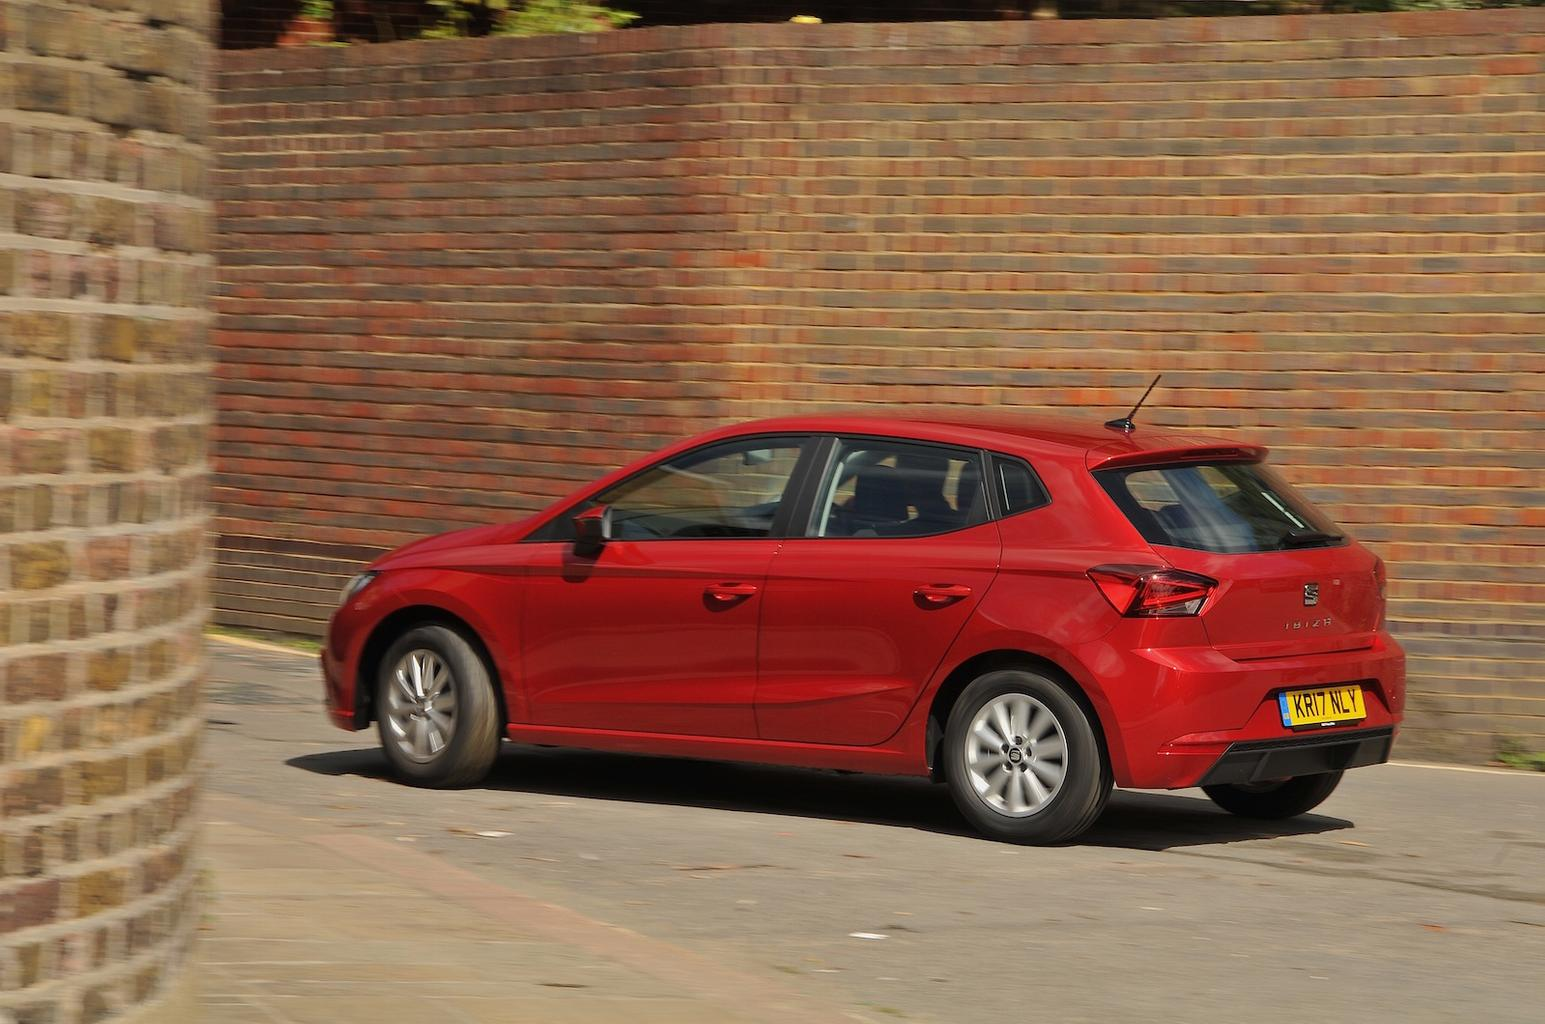 2017 Seat Ibiza 1.0 MPI 75 review – price, specs and release date